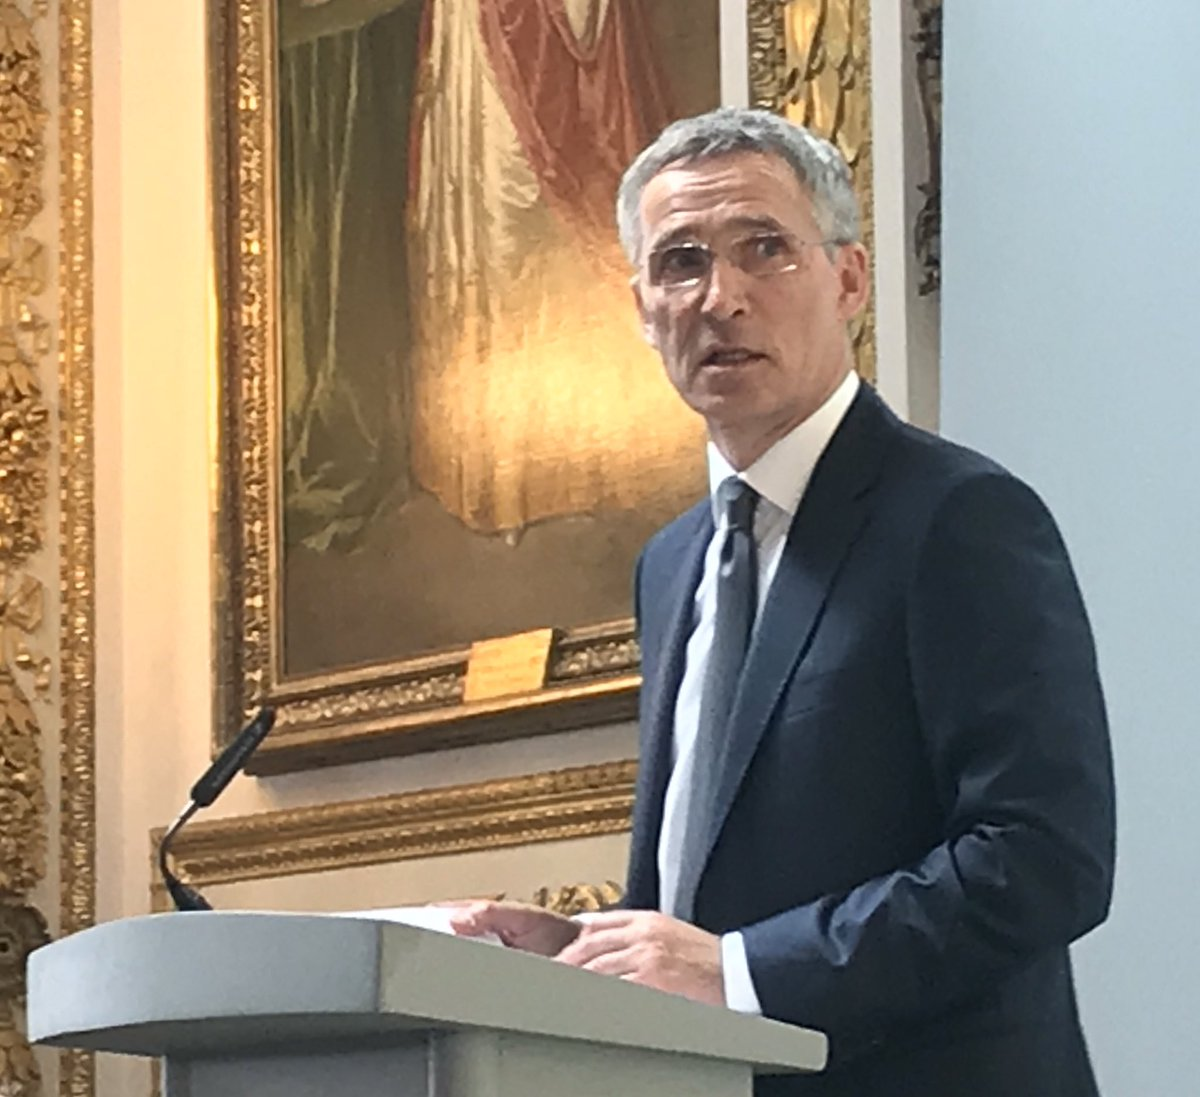 "@NATO Sec Gen @jensstoltenberg stated: ""By committing to continue to stay in Afghanistan, we are assisting with the success of the peace and reconciliation efforts in Afghanistan"" at the #NATO Pre-Summit briefing organised by Sir @marksedwill,UK NSA at @foreignoffice. #NATOsummit"